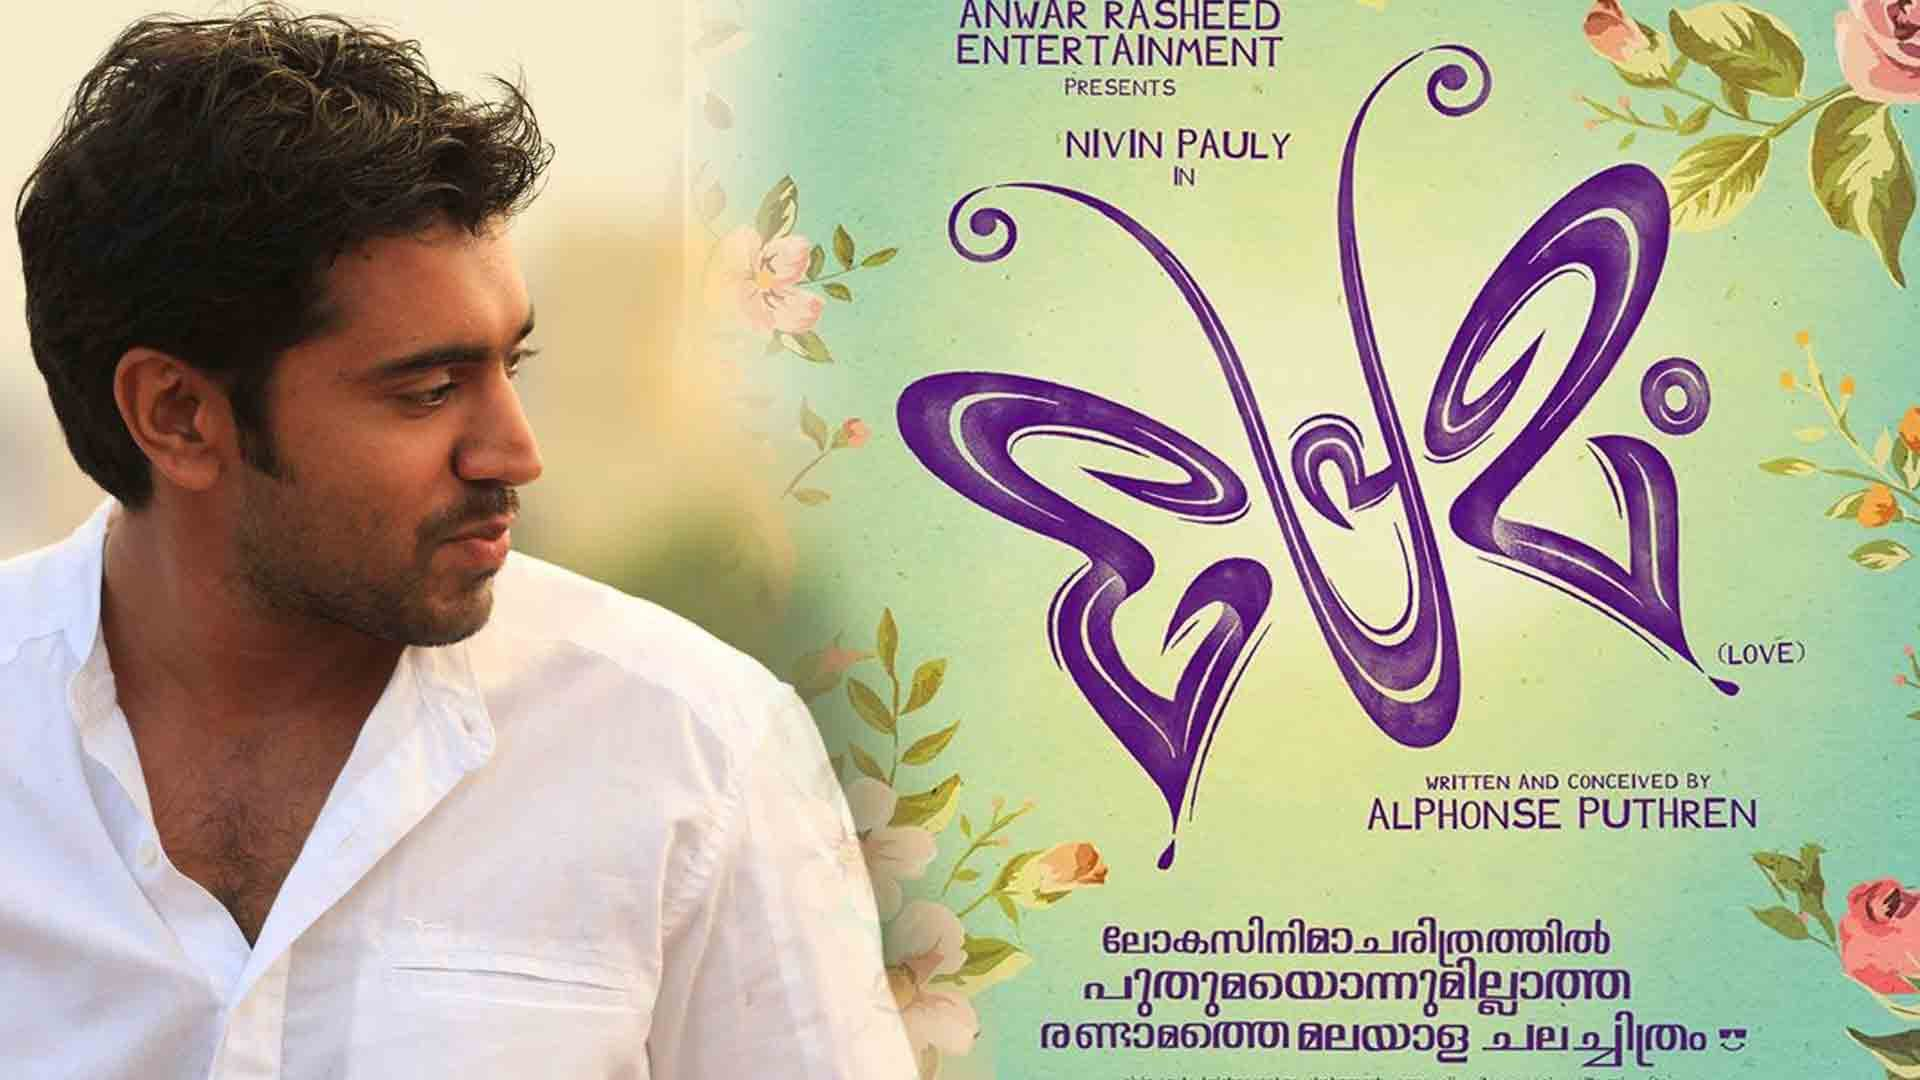 Charlie (2015) malayalam movie all mp3 songs download | charlly.